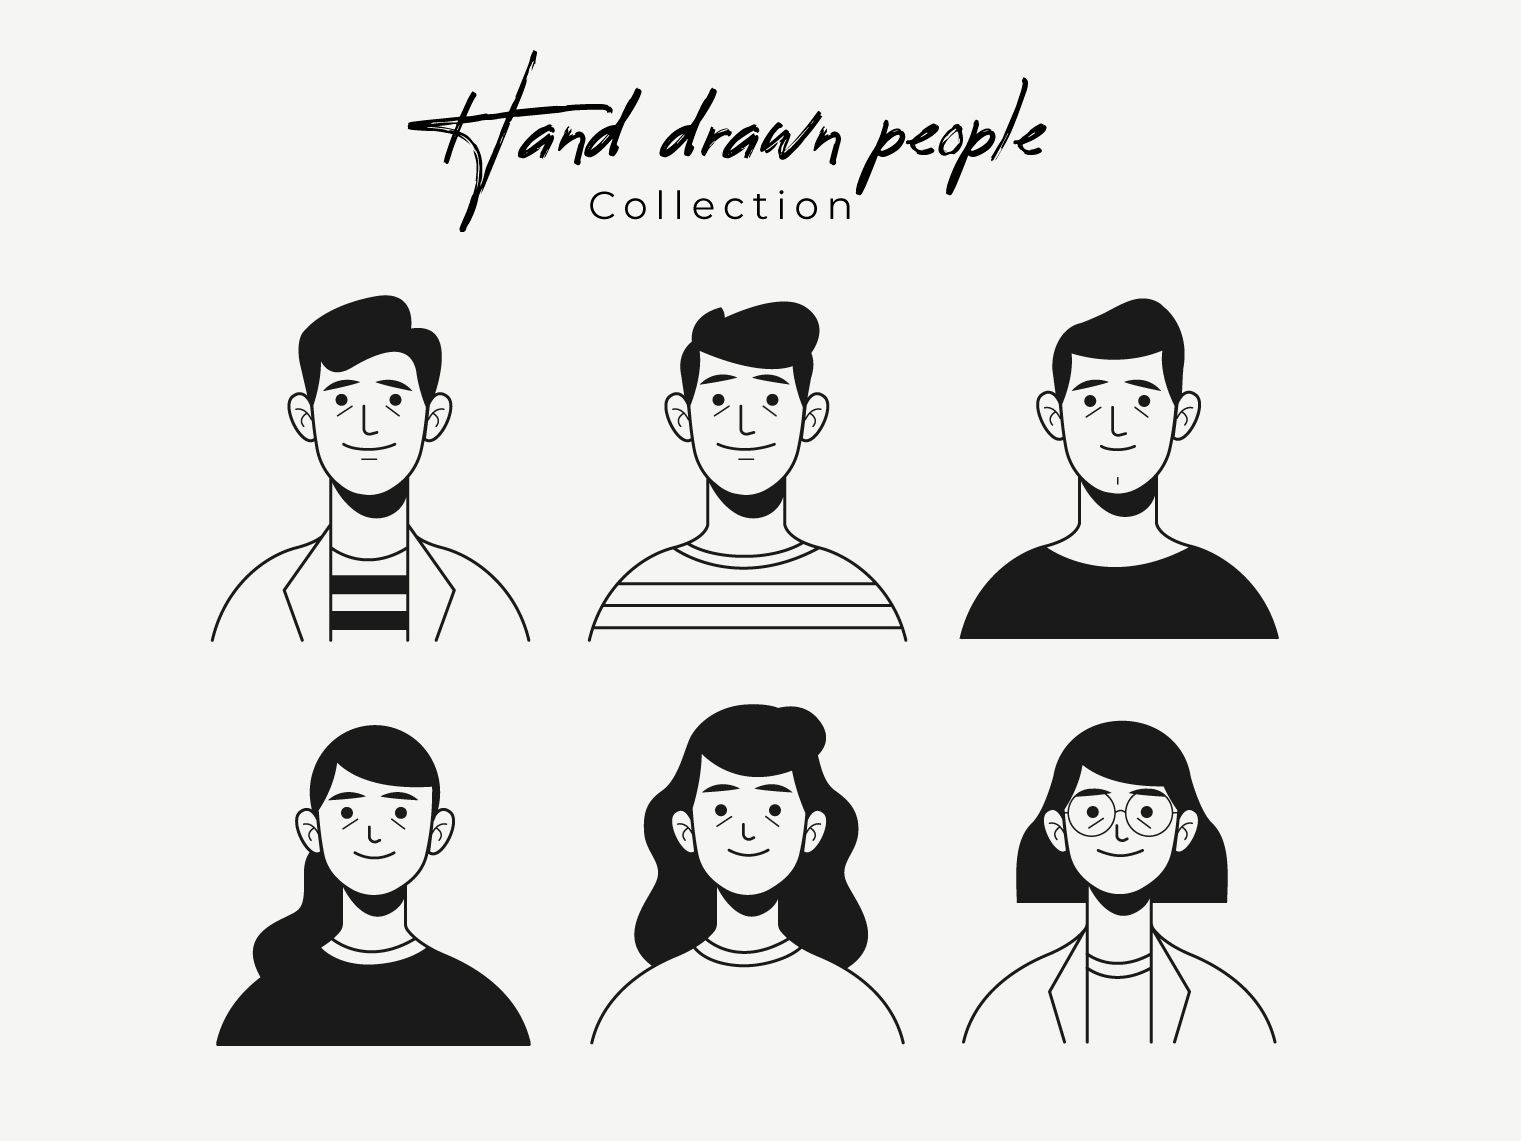 Hand drawn colorless people avatar collection characters